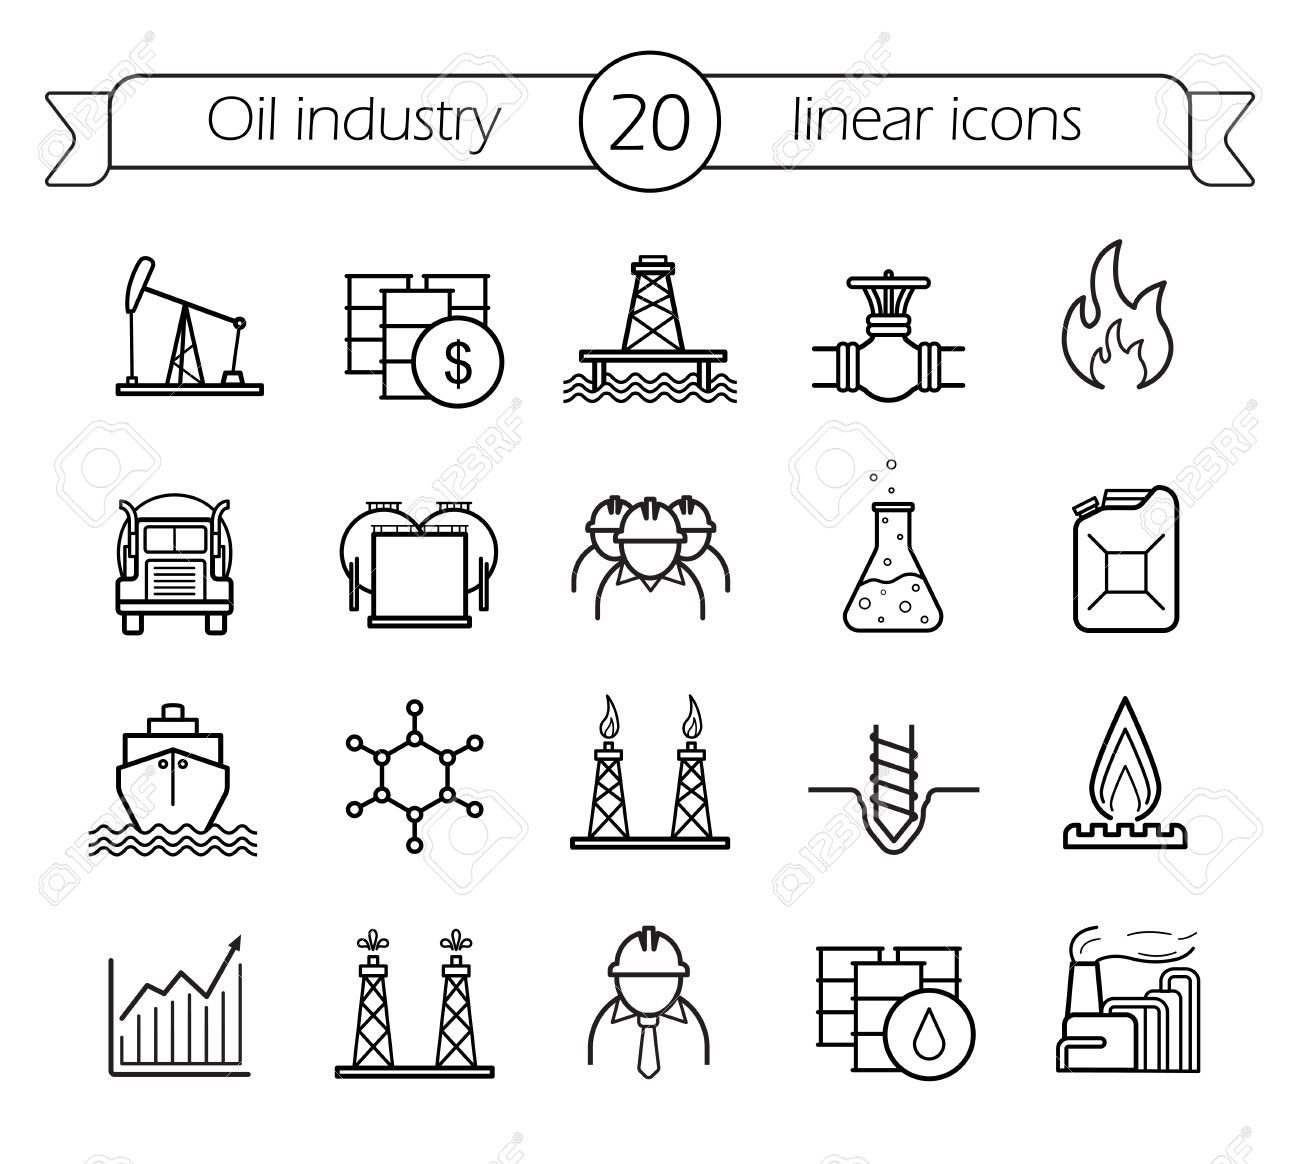 Oil industry linear icons set. Gas production, transportation, storage vector line art - 46997545